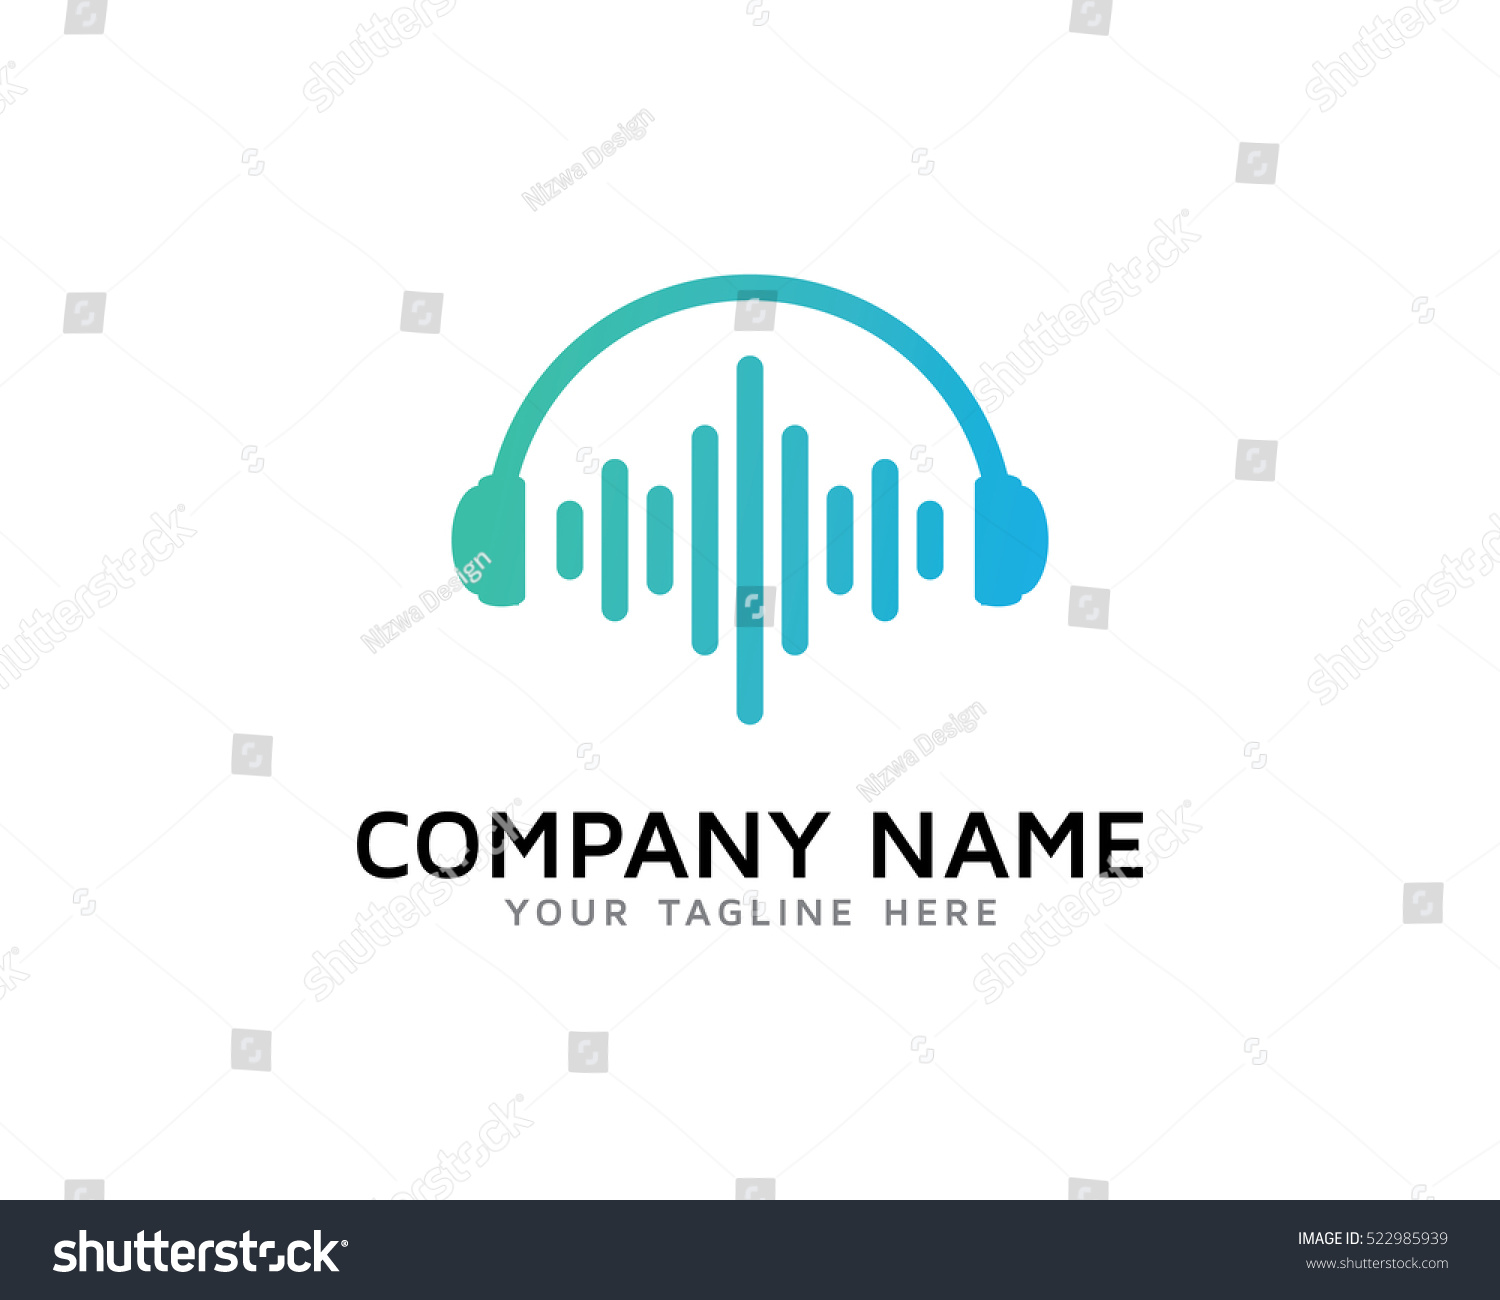 Sound Wave Logo Design Template Stock Vector (Royalty Free ...